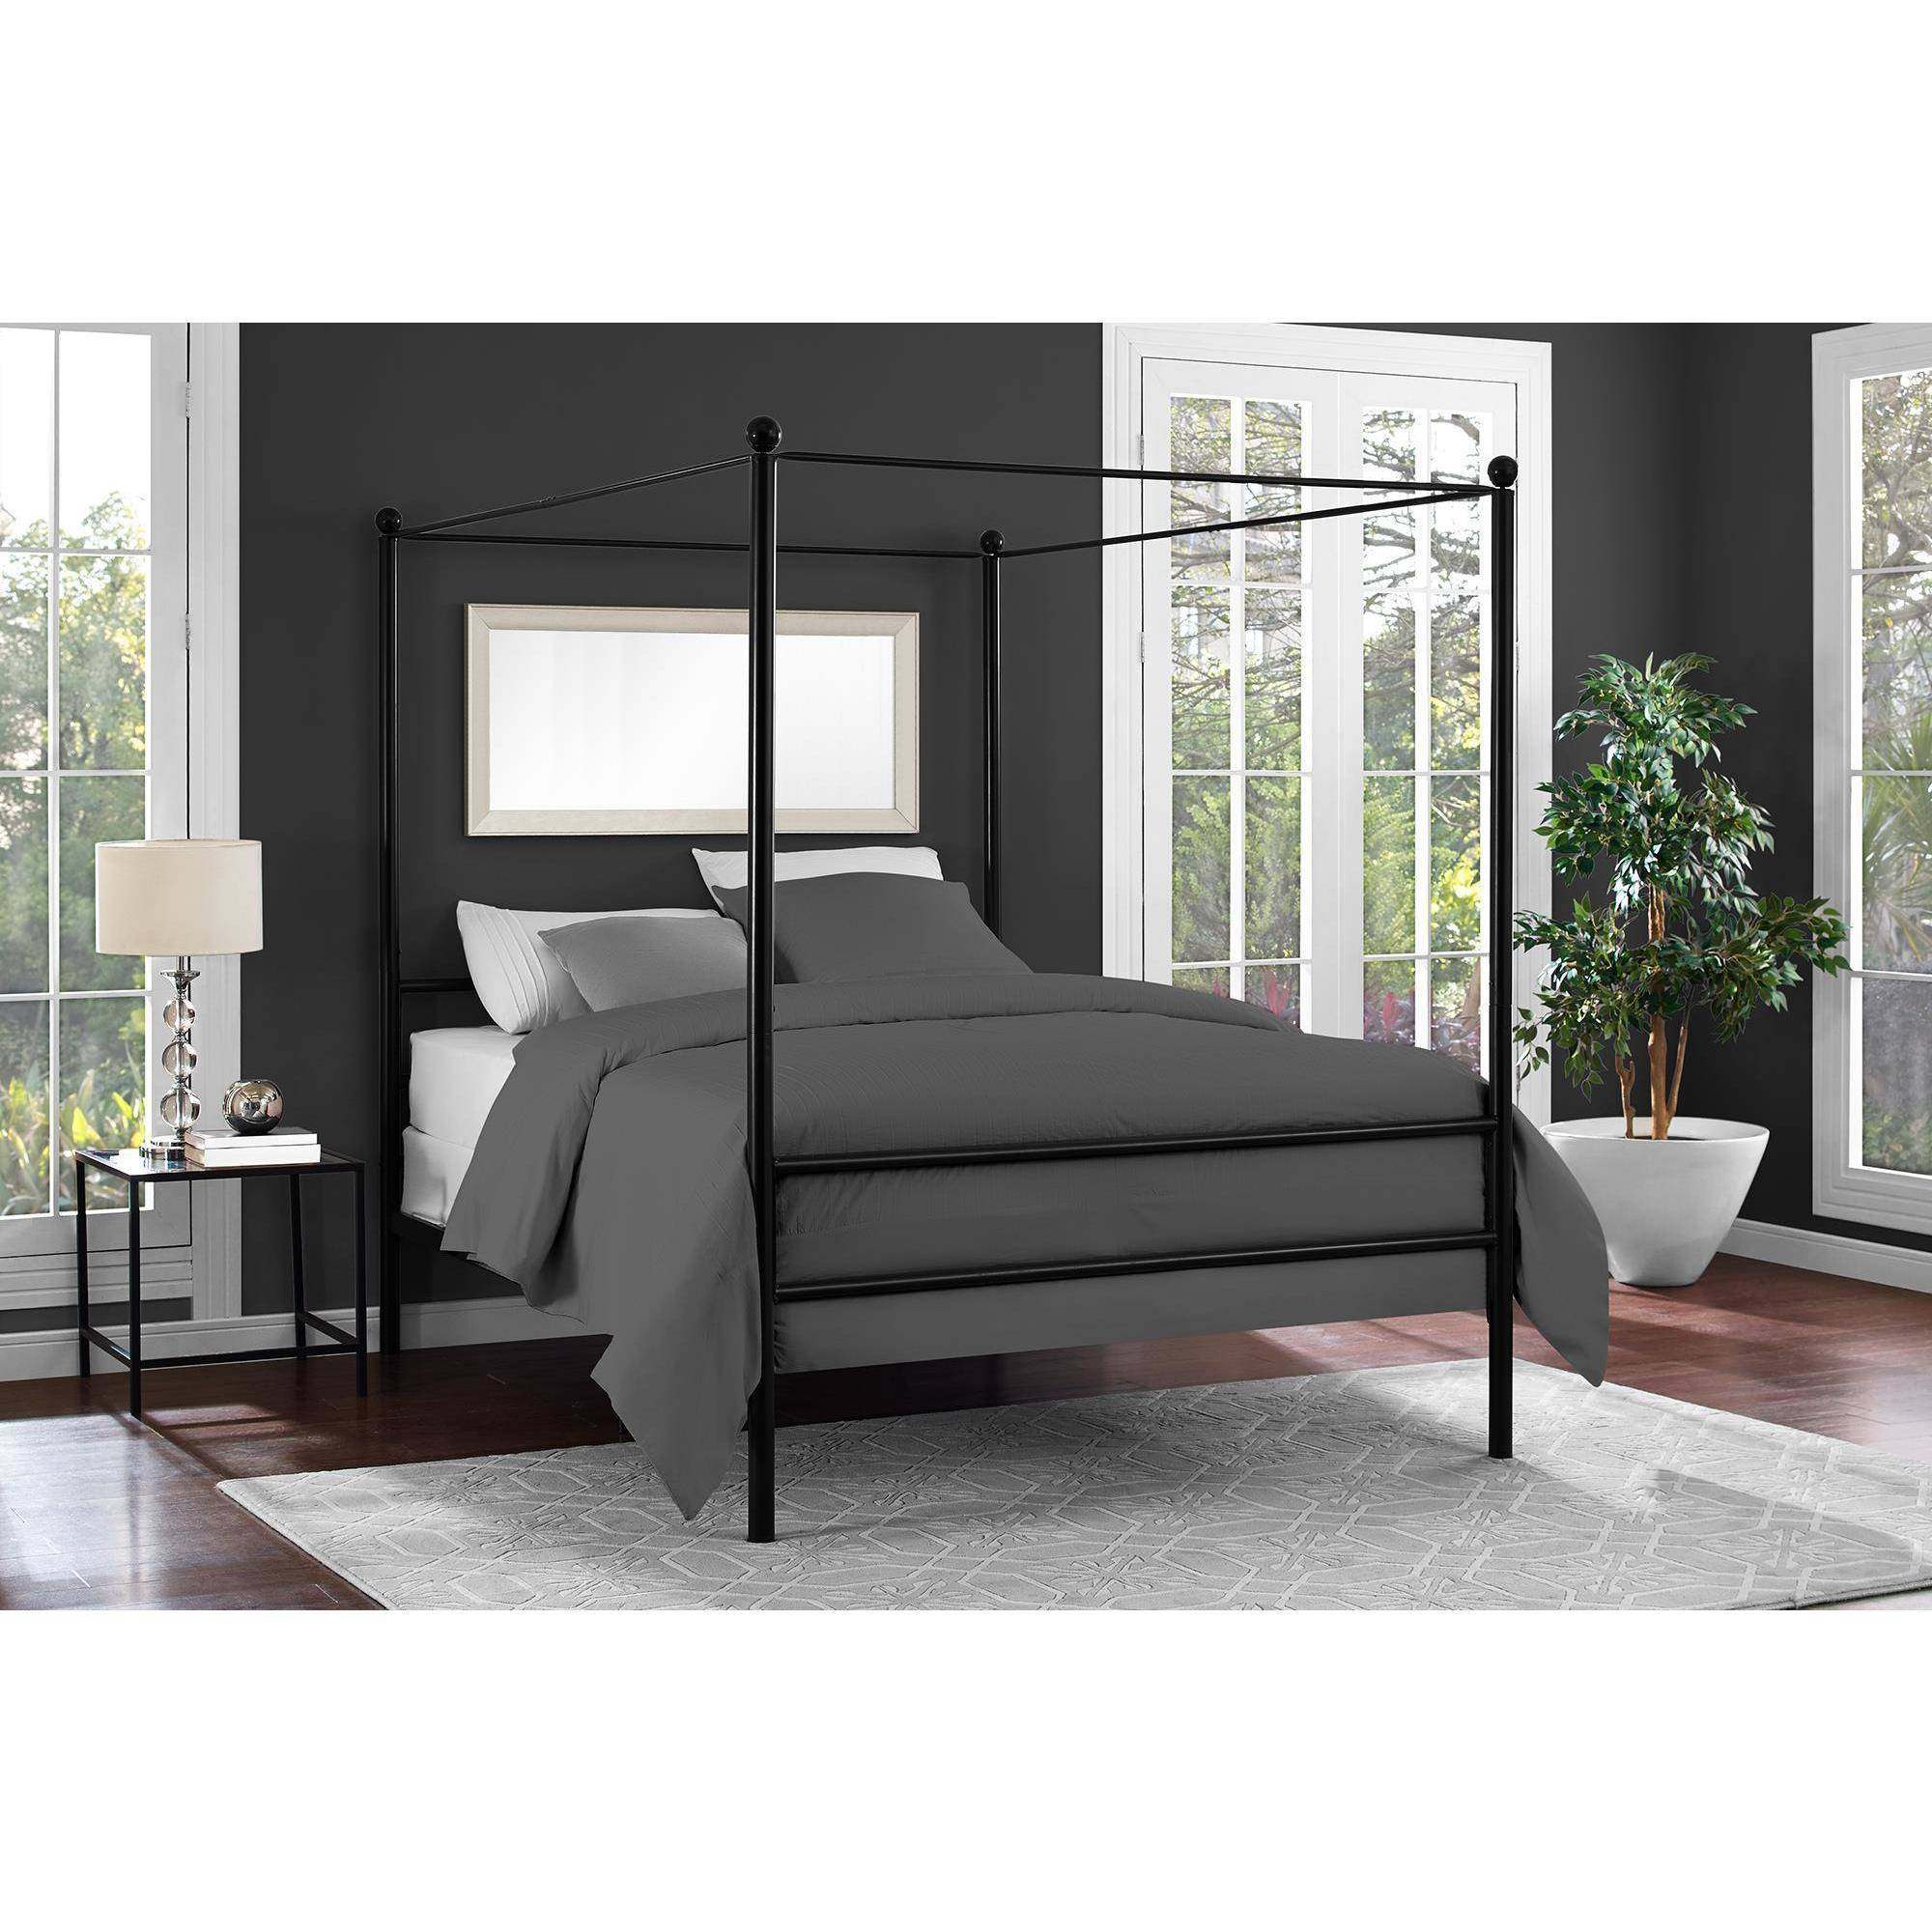 Mainstays Metal Canopy Bed Multiple Colors Multiple Sizes - Walmart.com  sc 1 st  Walmart & Mainstays Metal Canopy Bed Multiple Colors Multiple Sizes ...